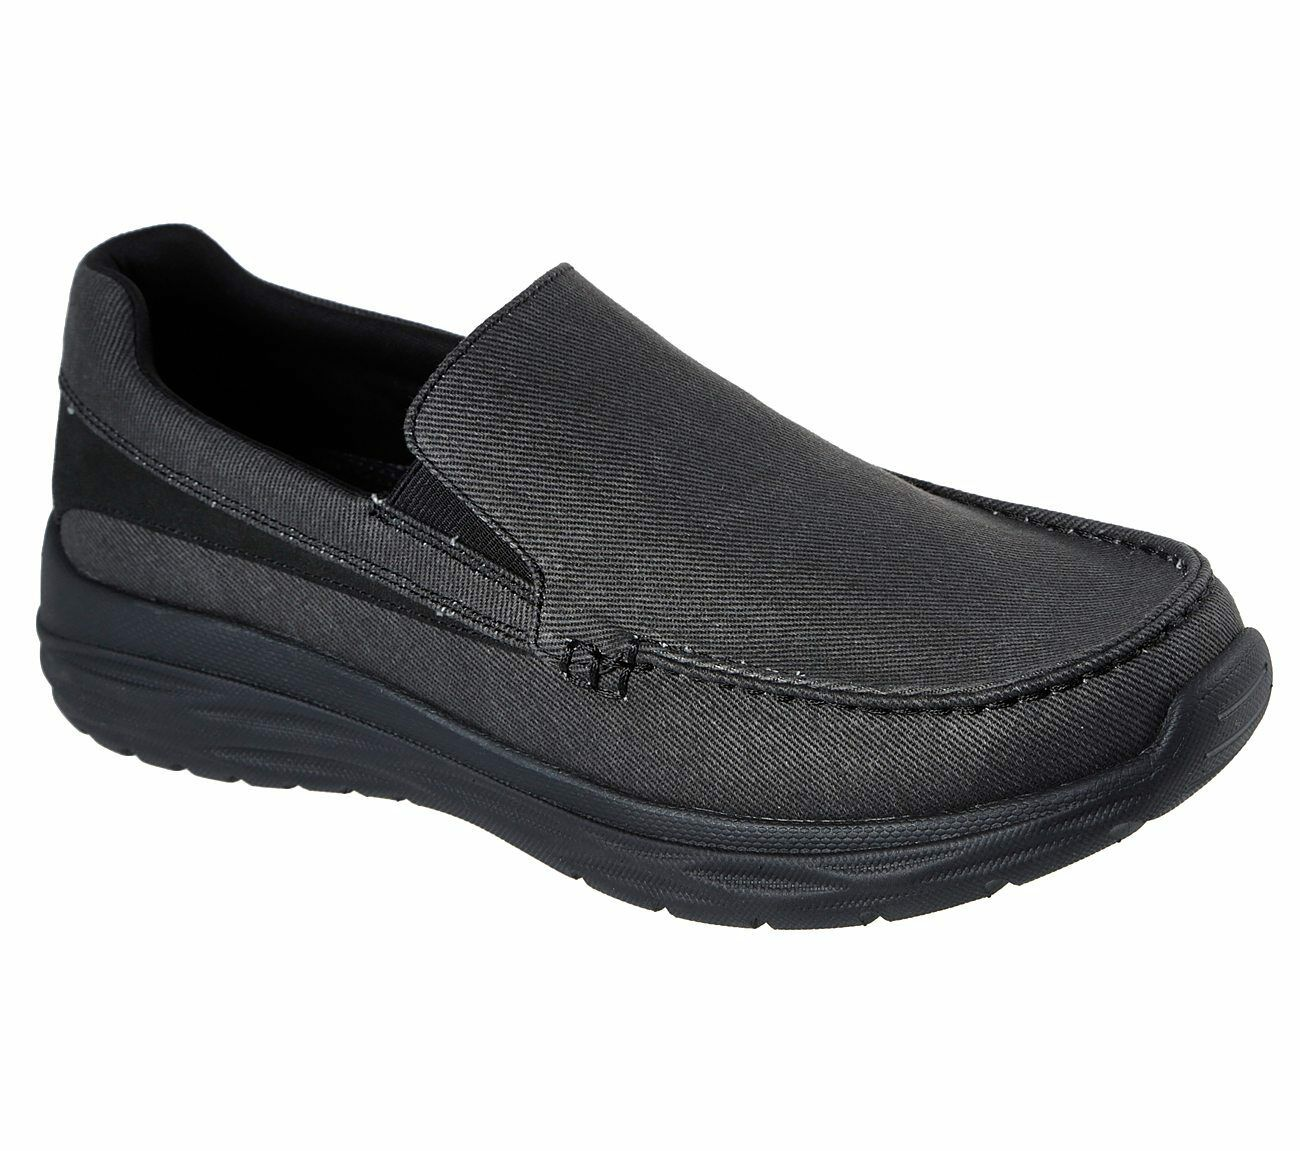 65605 Black Skechers shoes Men Canvas Memory Foam Slip On Comfort Loafer Casual